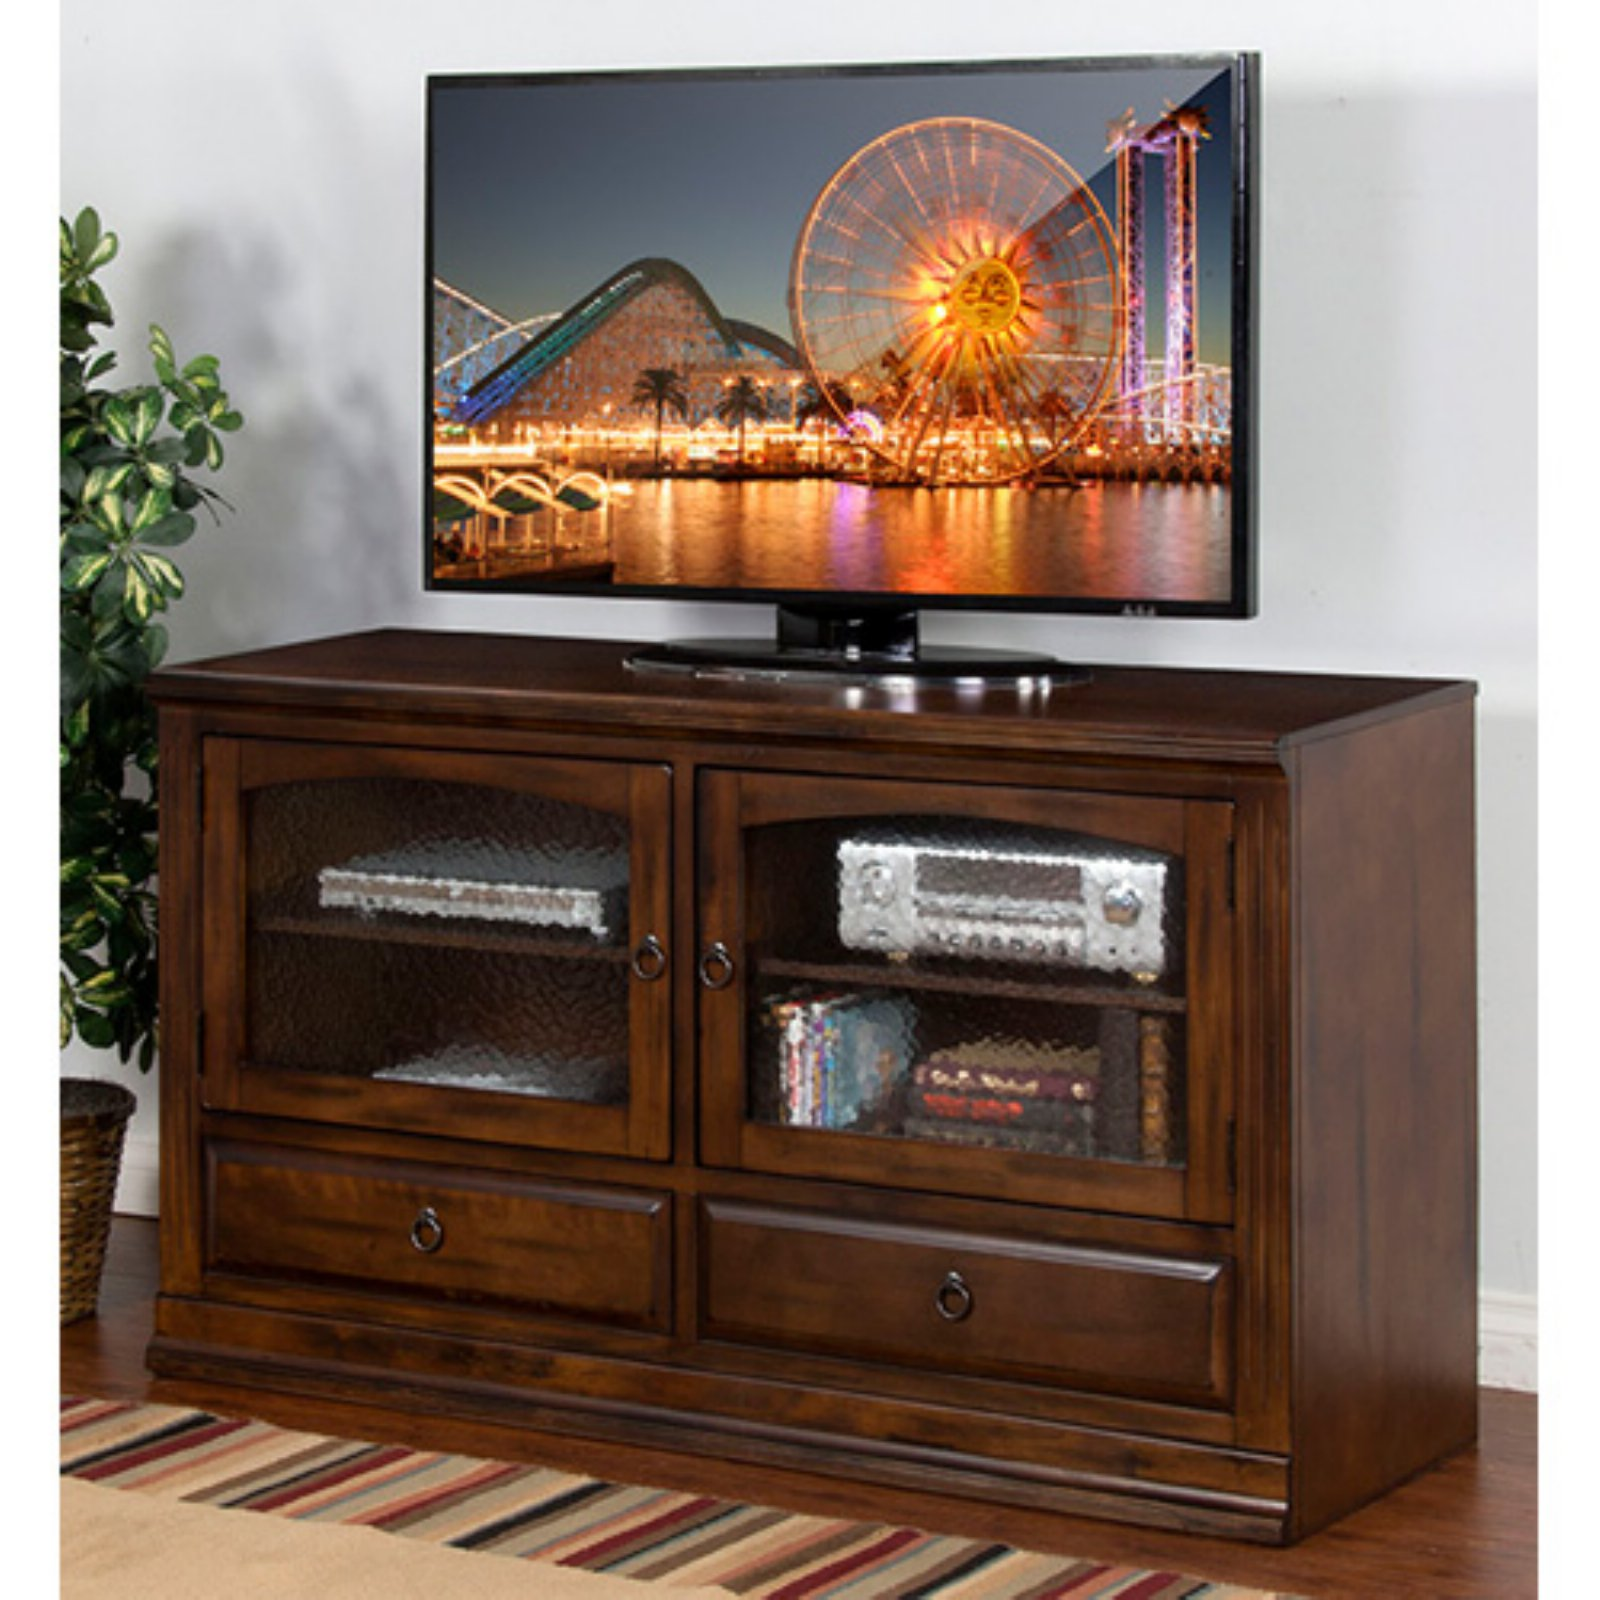 Sunny Designs Santa Fe 63 in. Entertainment Center